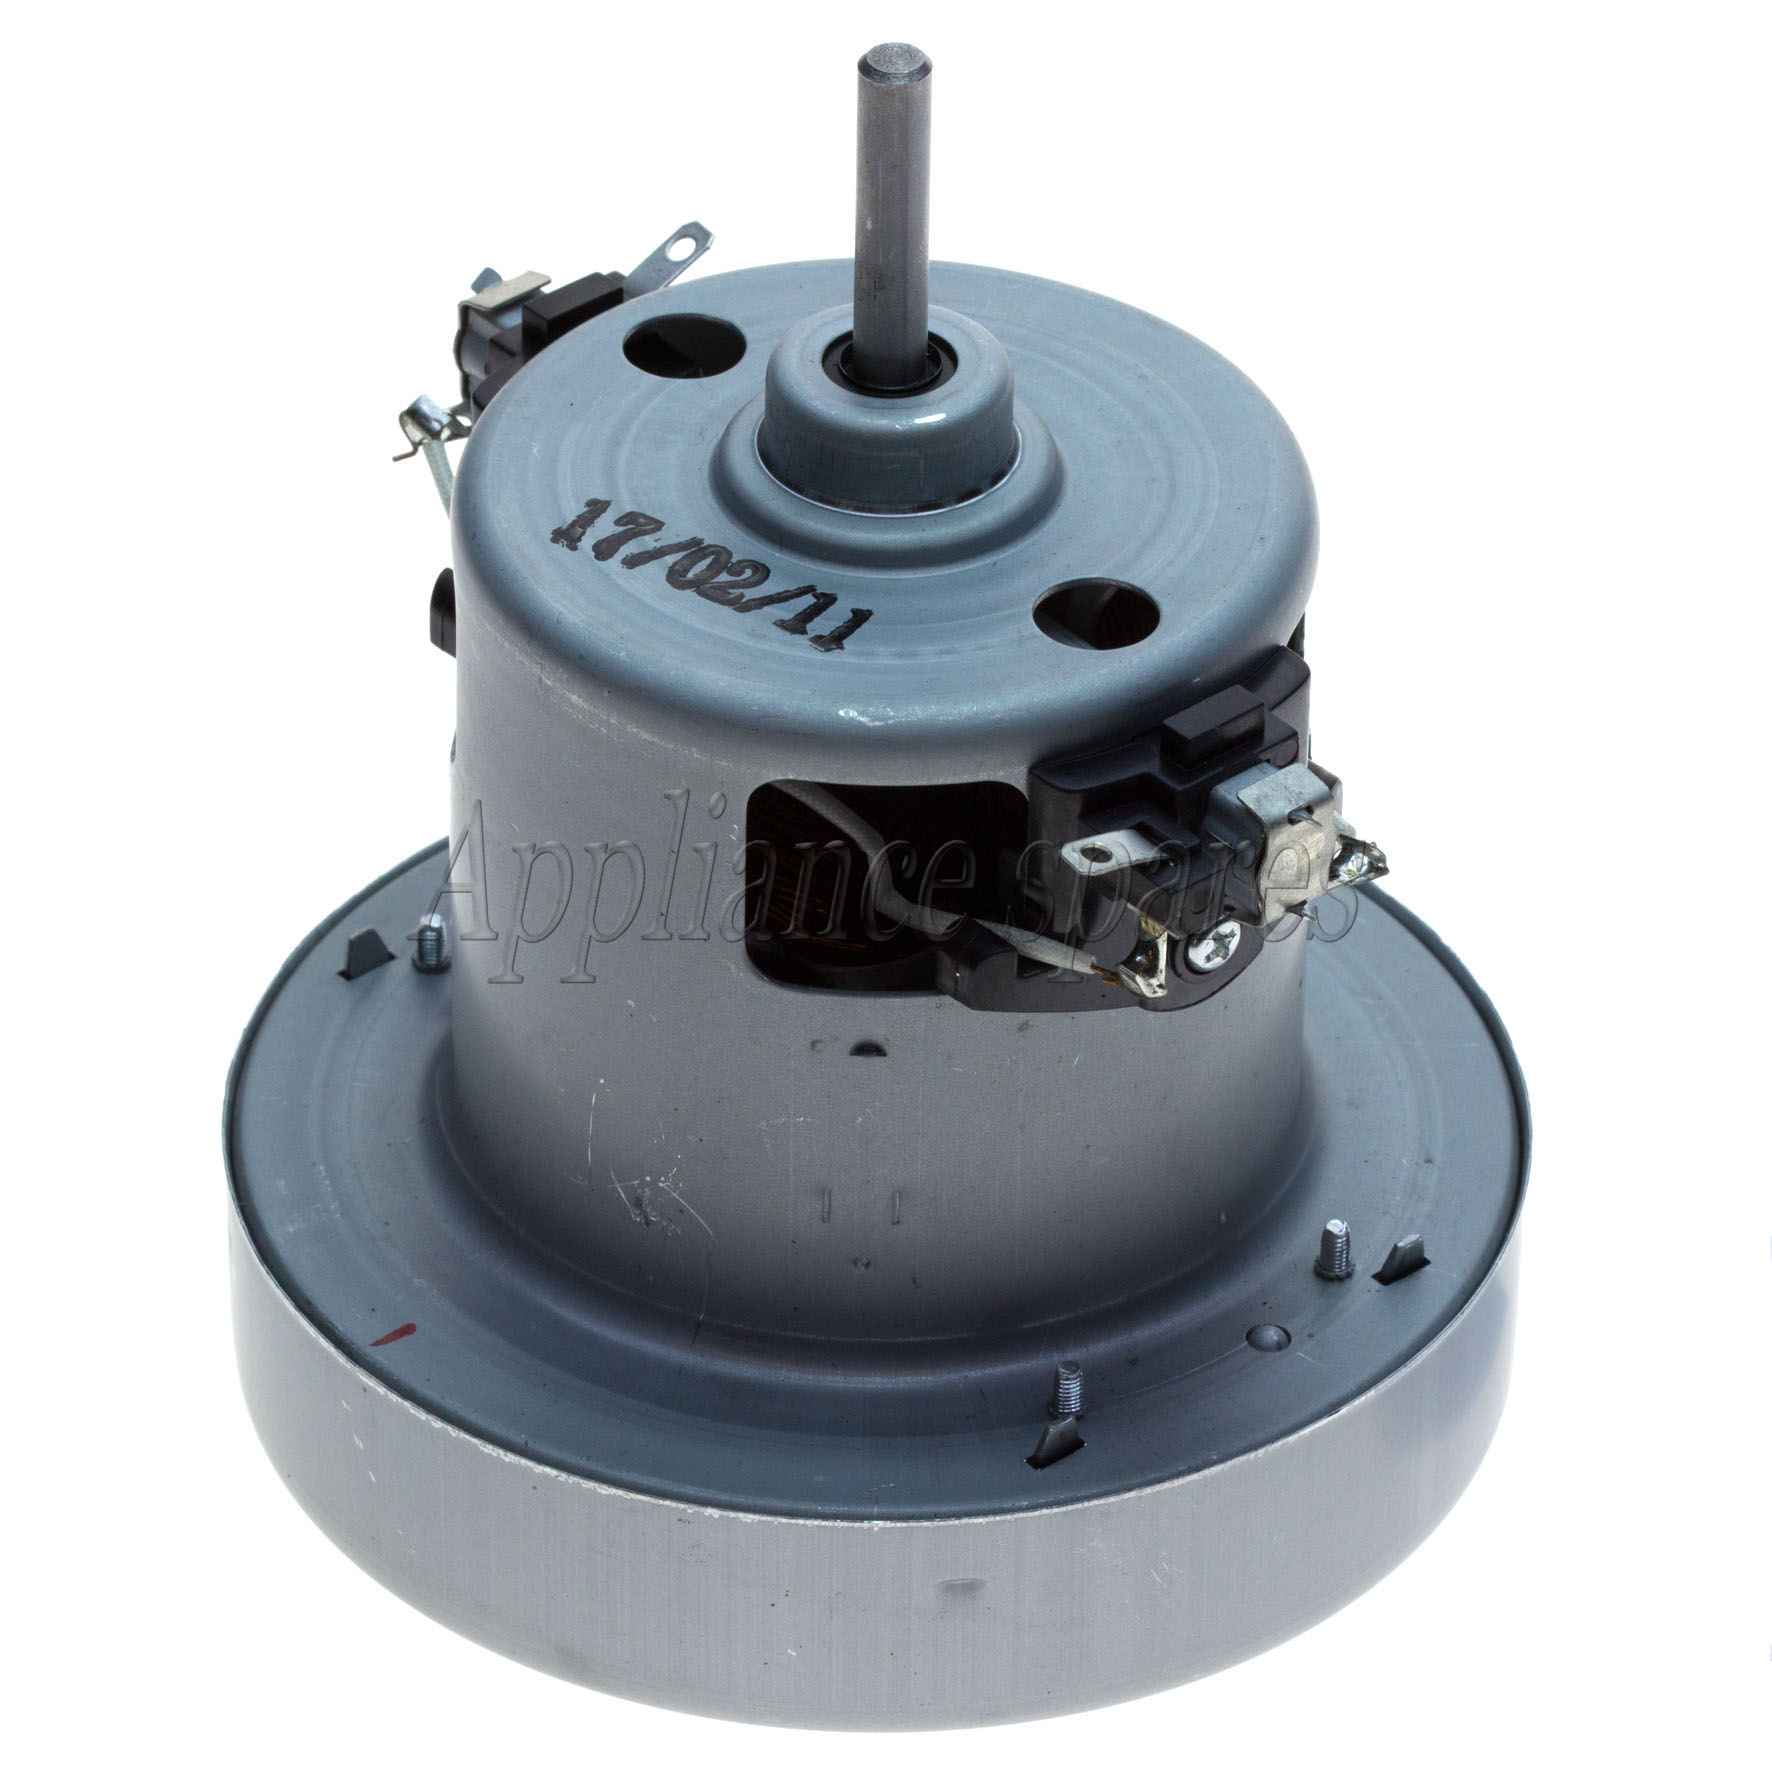 Electrolux vacuum cleaner motor discontinued lategan for Motor for vacuum cleaner